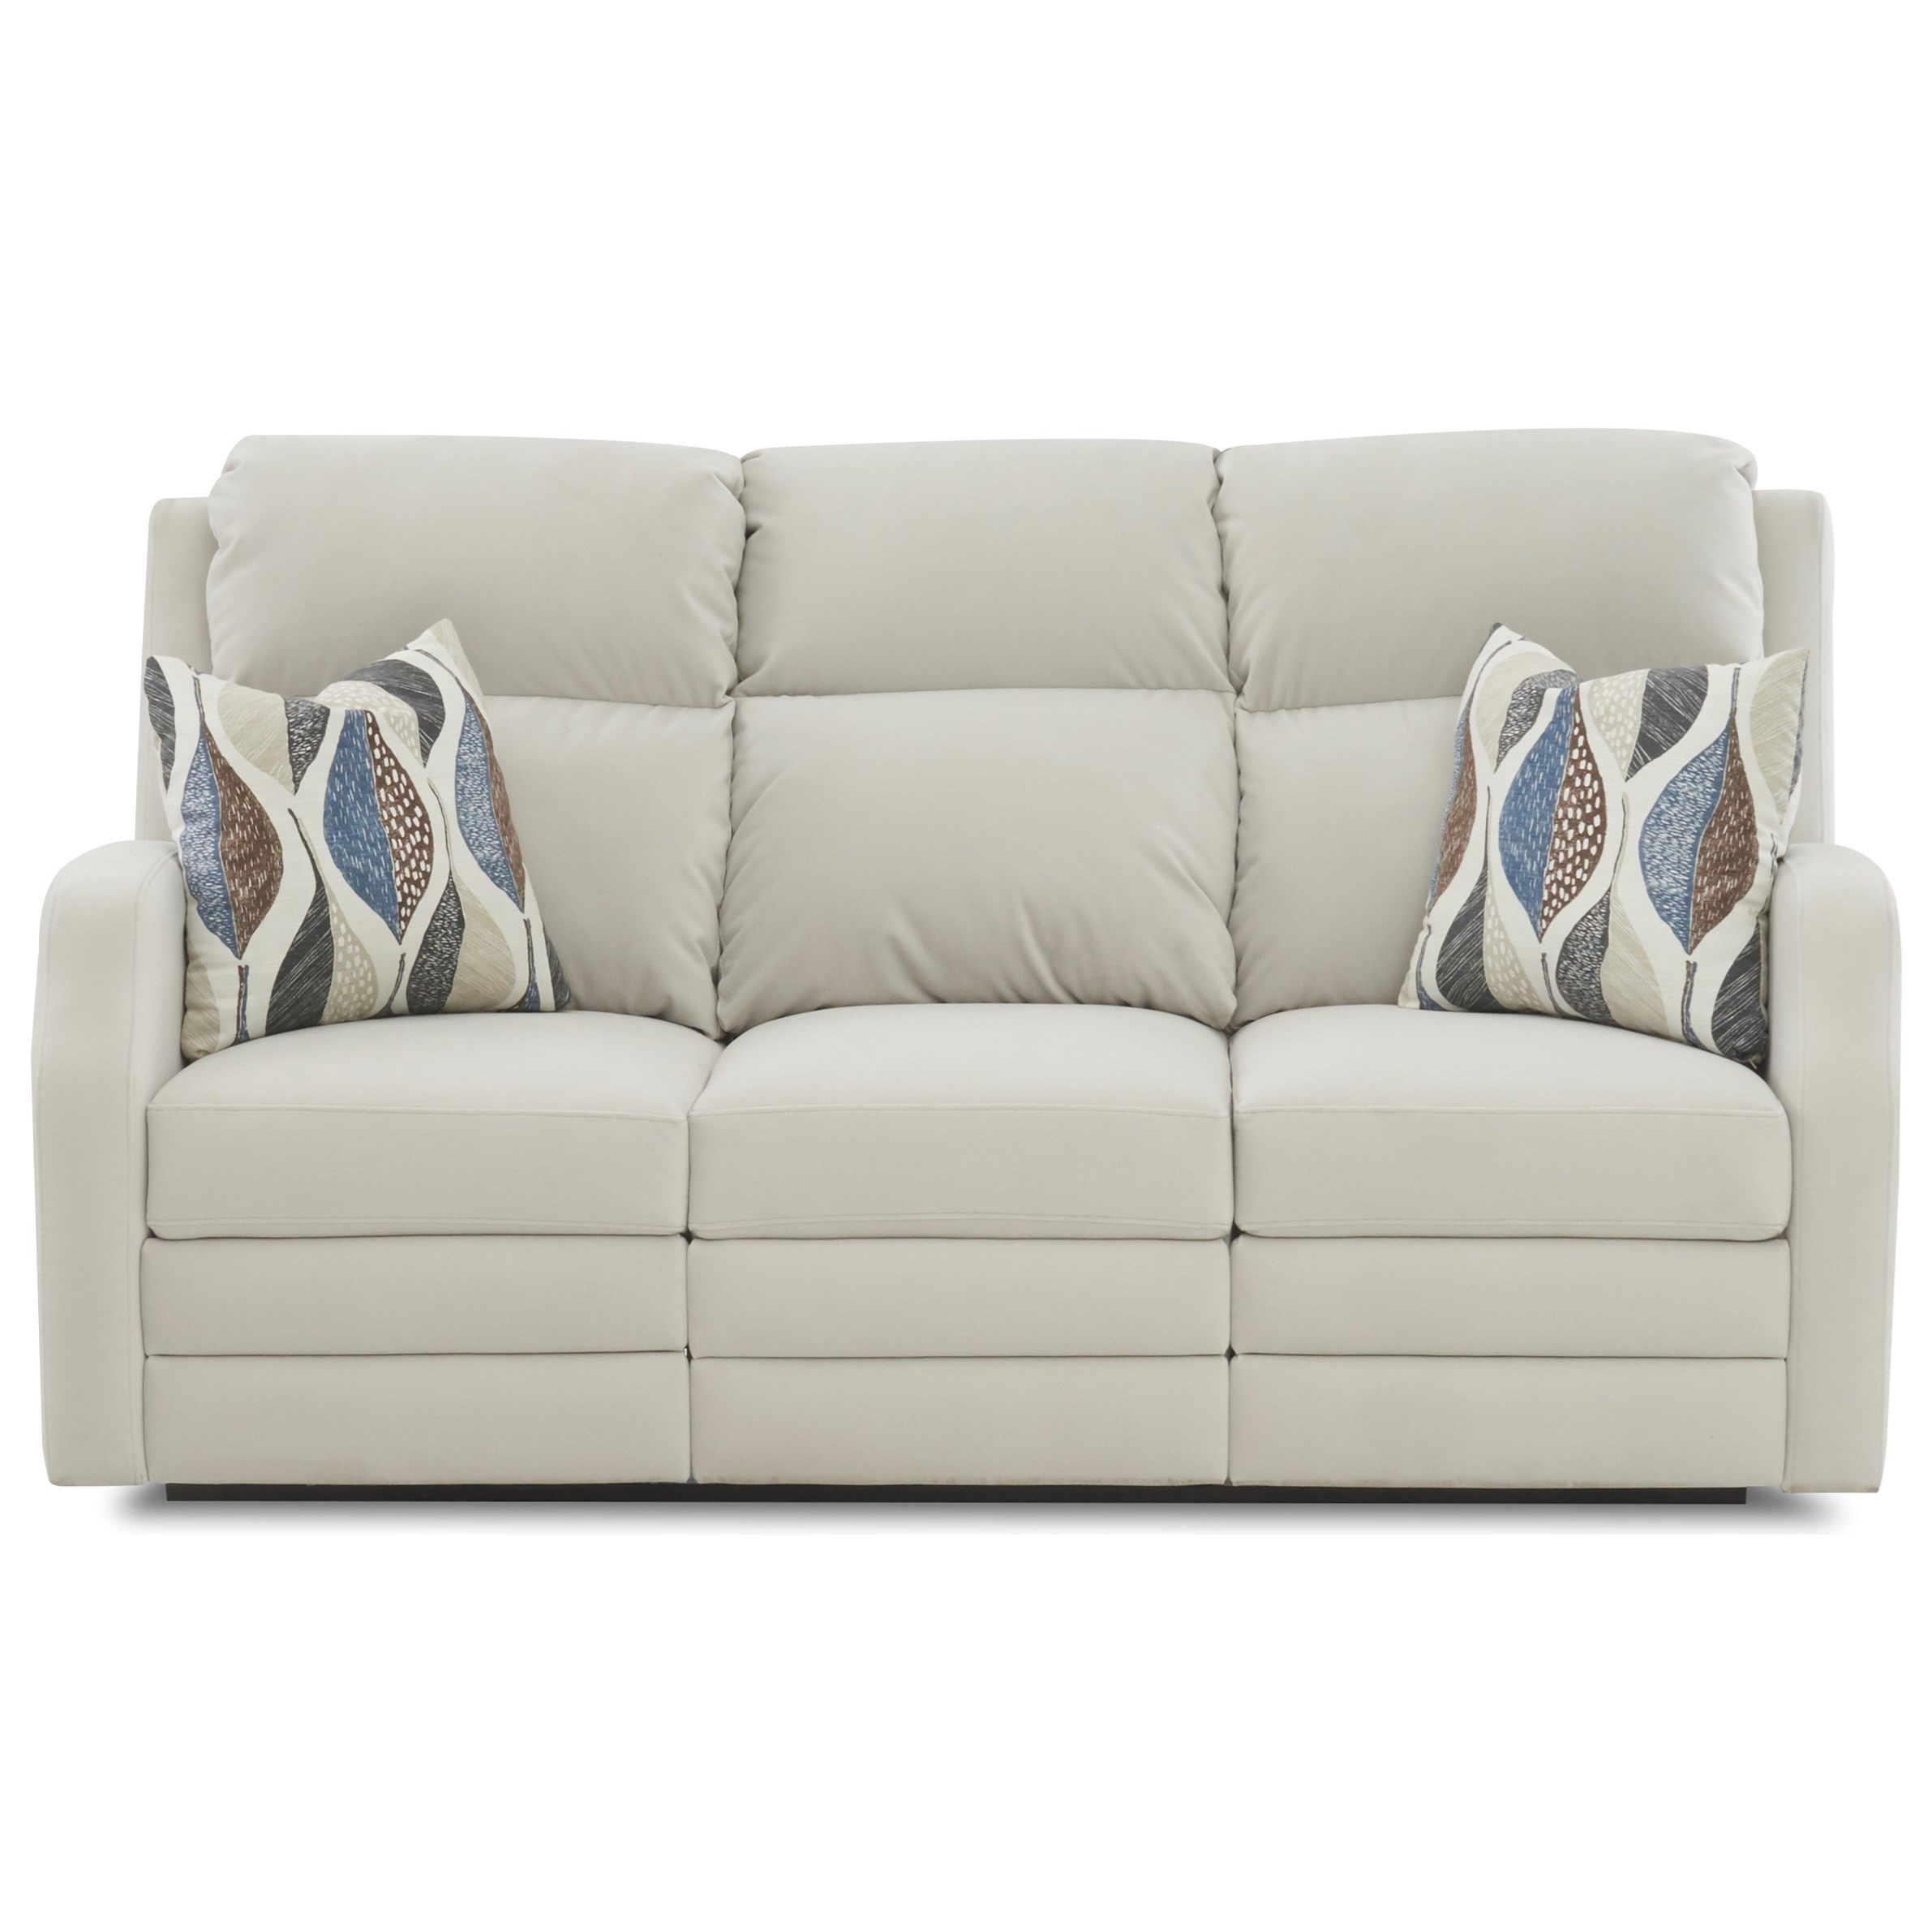 77 Inch Power Reclining Sofa with USB Charging Ports, Power Headrests / Lumbar, Pillows